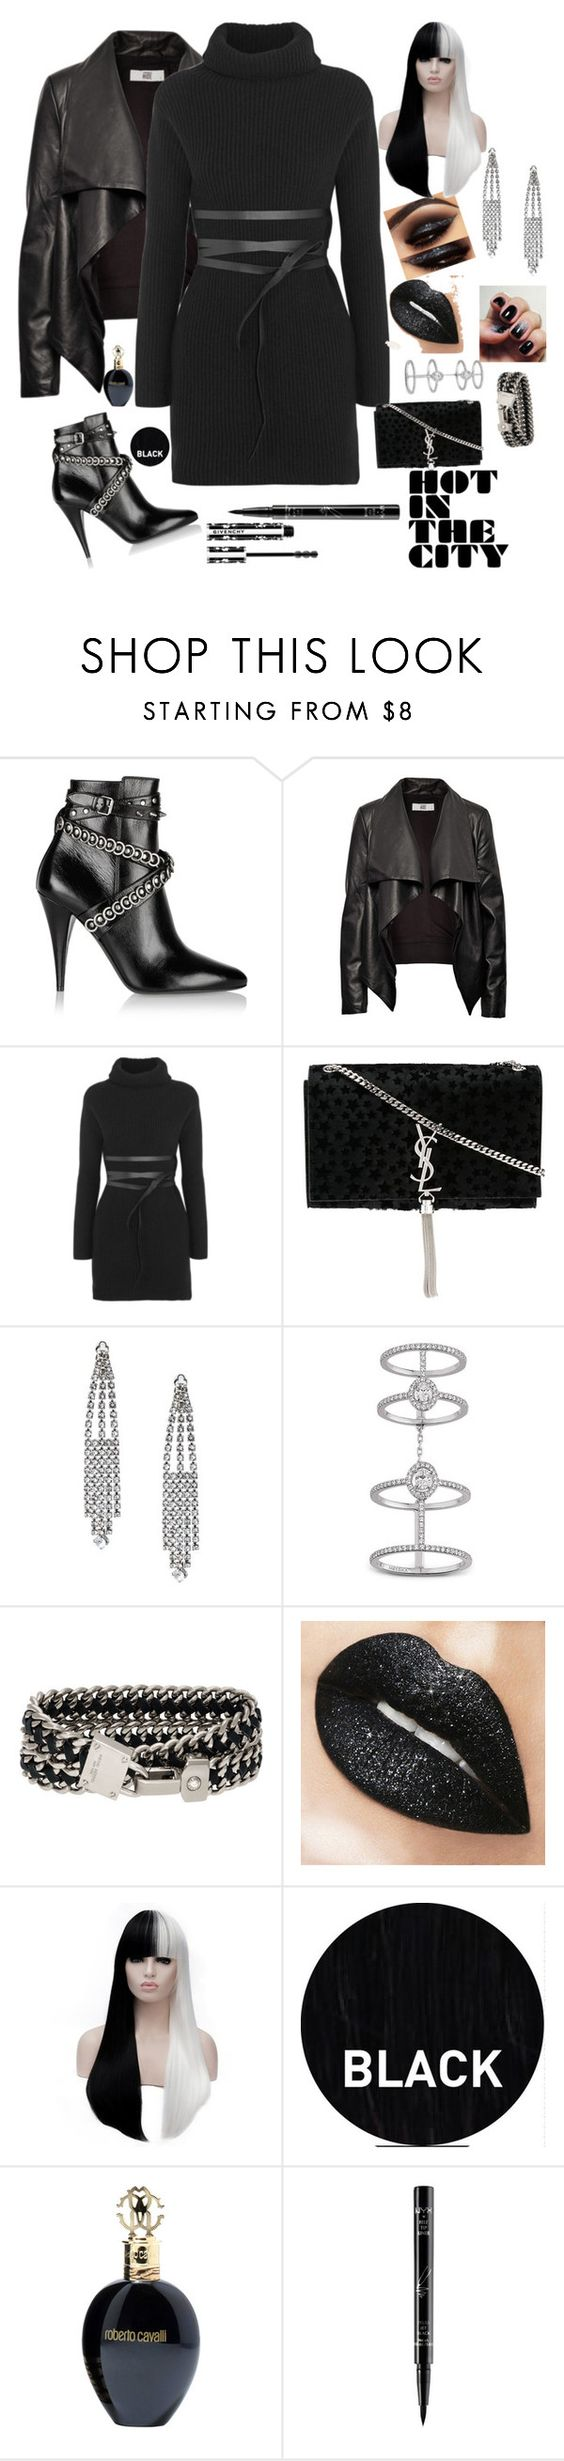 City Chic by marlaj-50 on Polyvore featuring Valentino, HIDE, Yves Saint Laurent, Messika, Henri Bendel, Givenchy, NYX, Roberto Cavalli and Sleep In Rollers